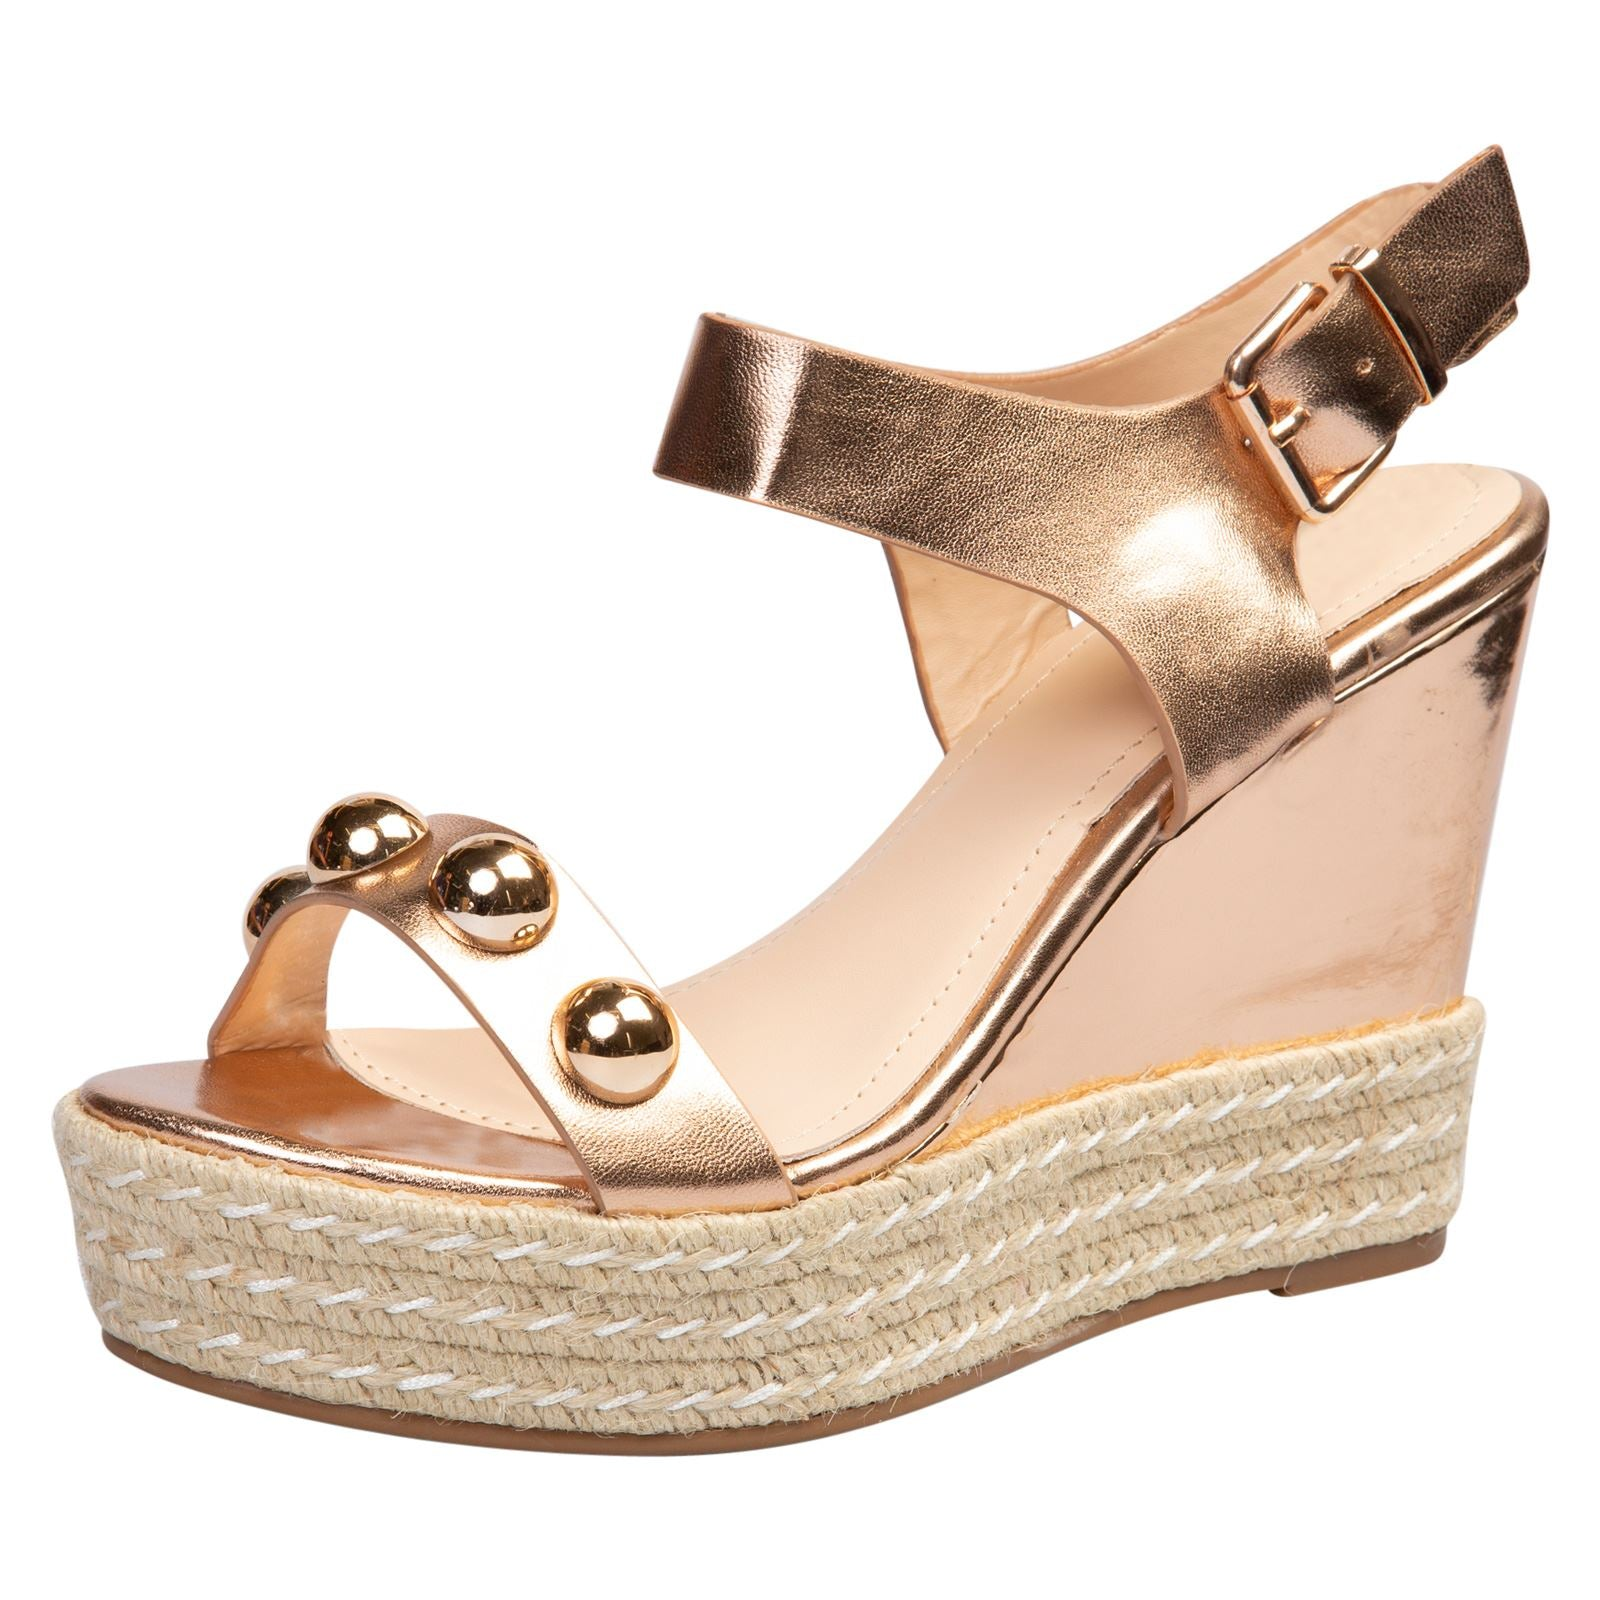 Iolanthe Studded Platform Sandals in Rose Gold Faux Leather - Feet First Fashion